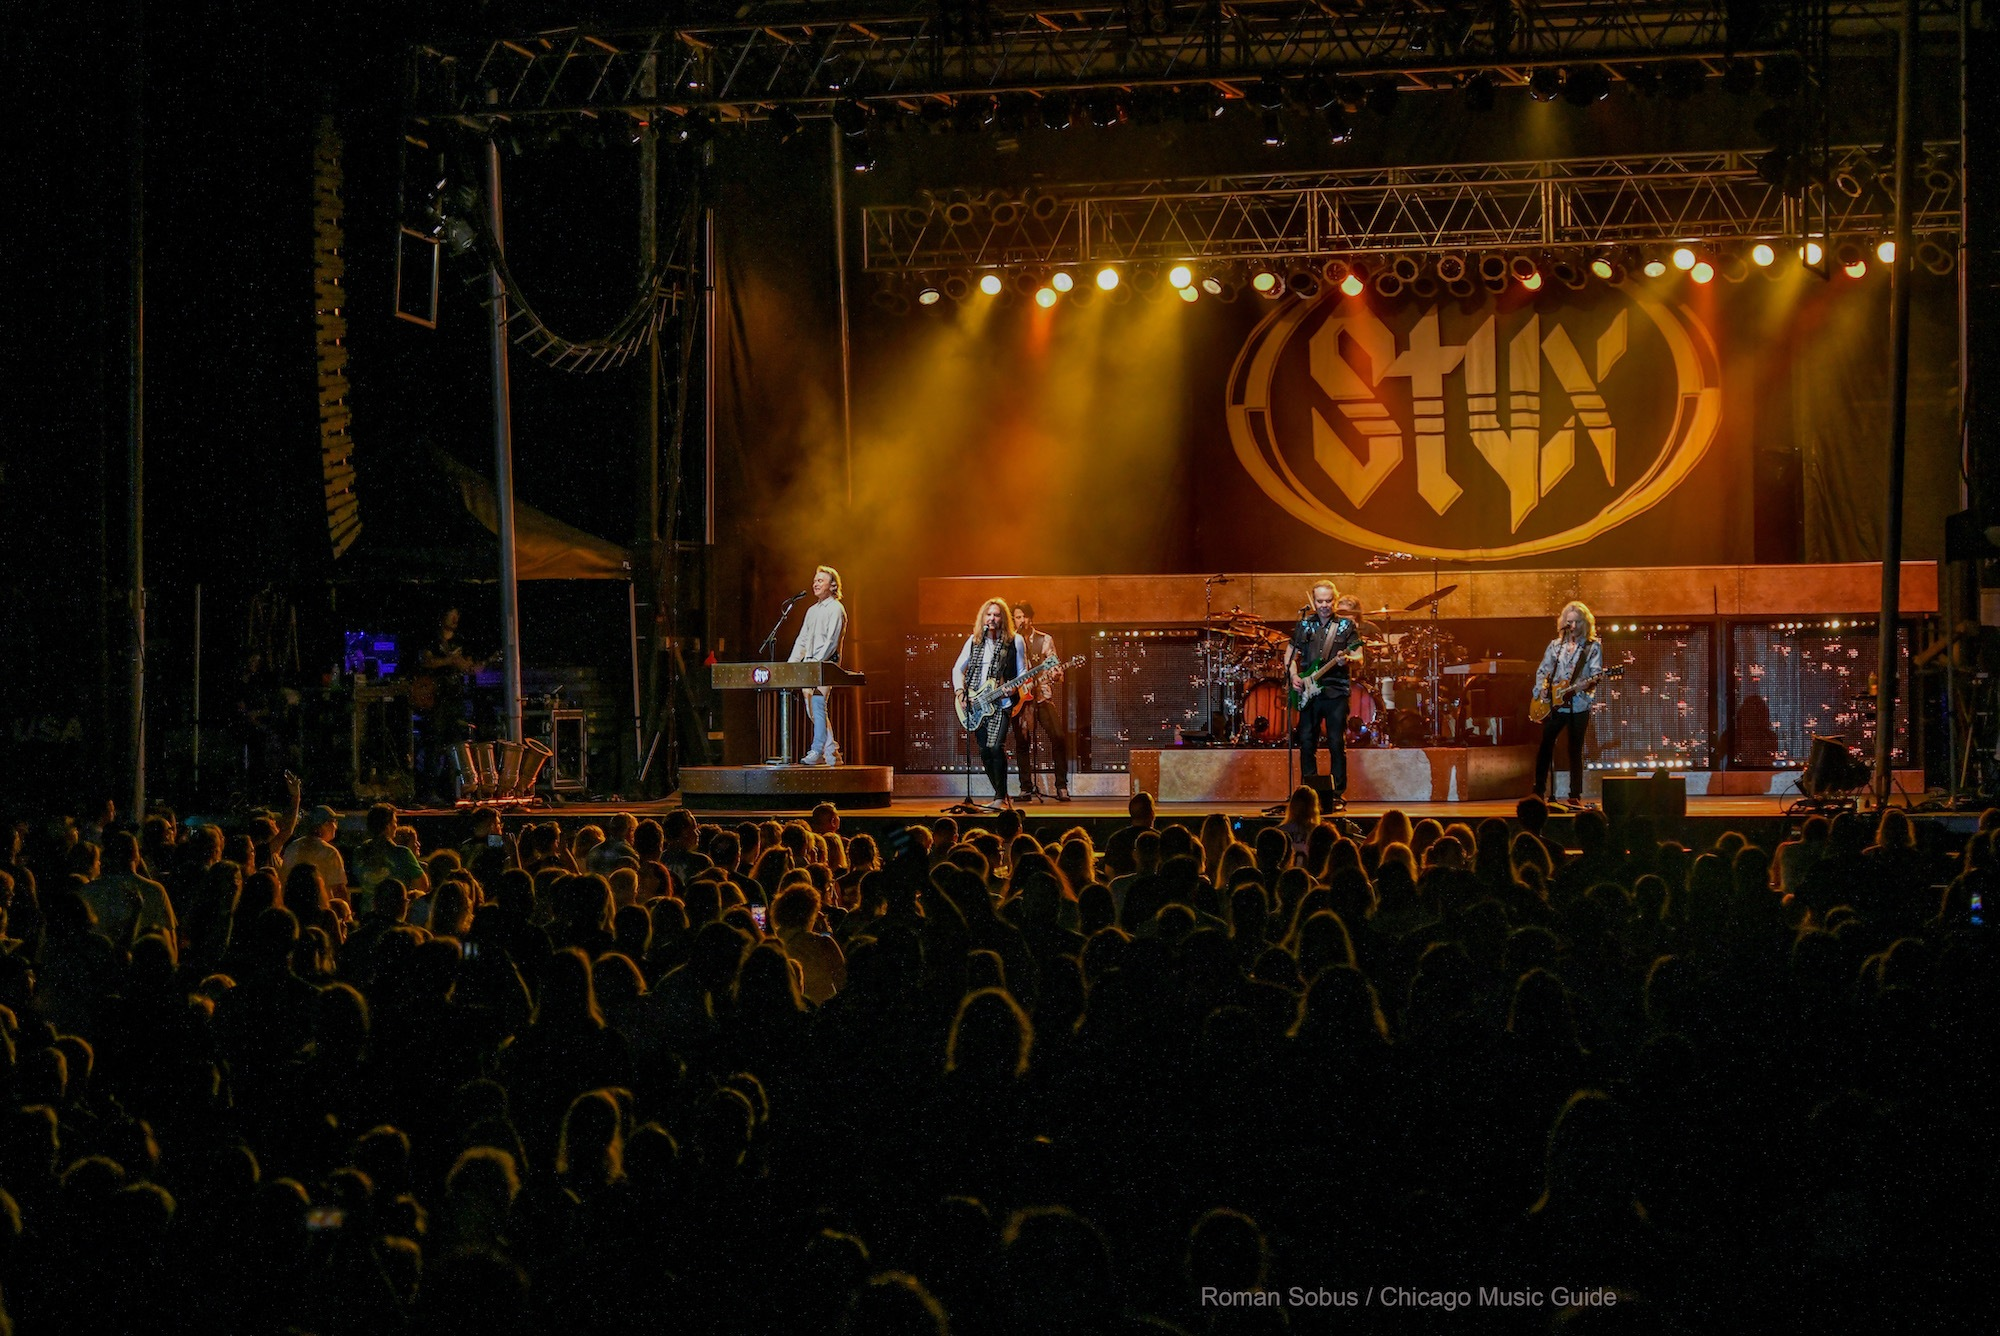 STYX Live at McHenry County Fairgrounds [GALLERY] 15